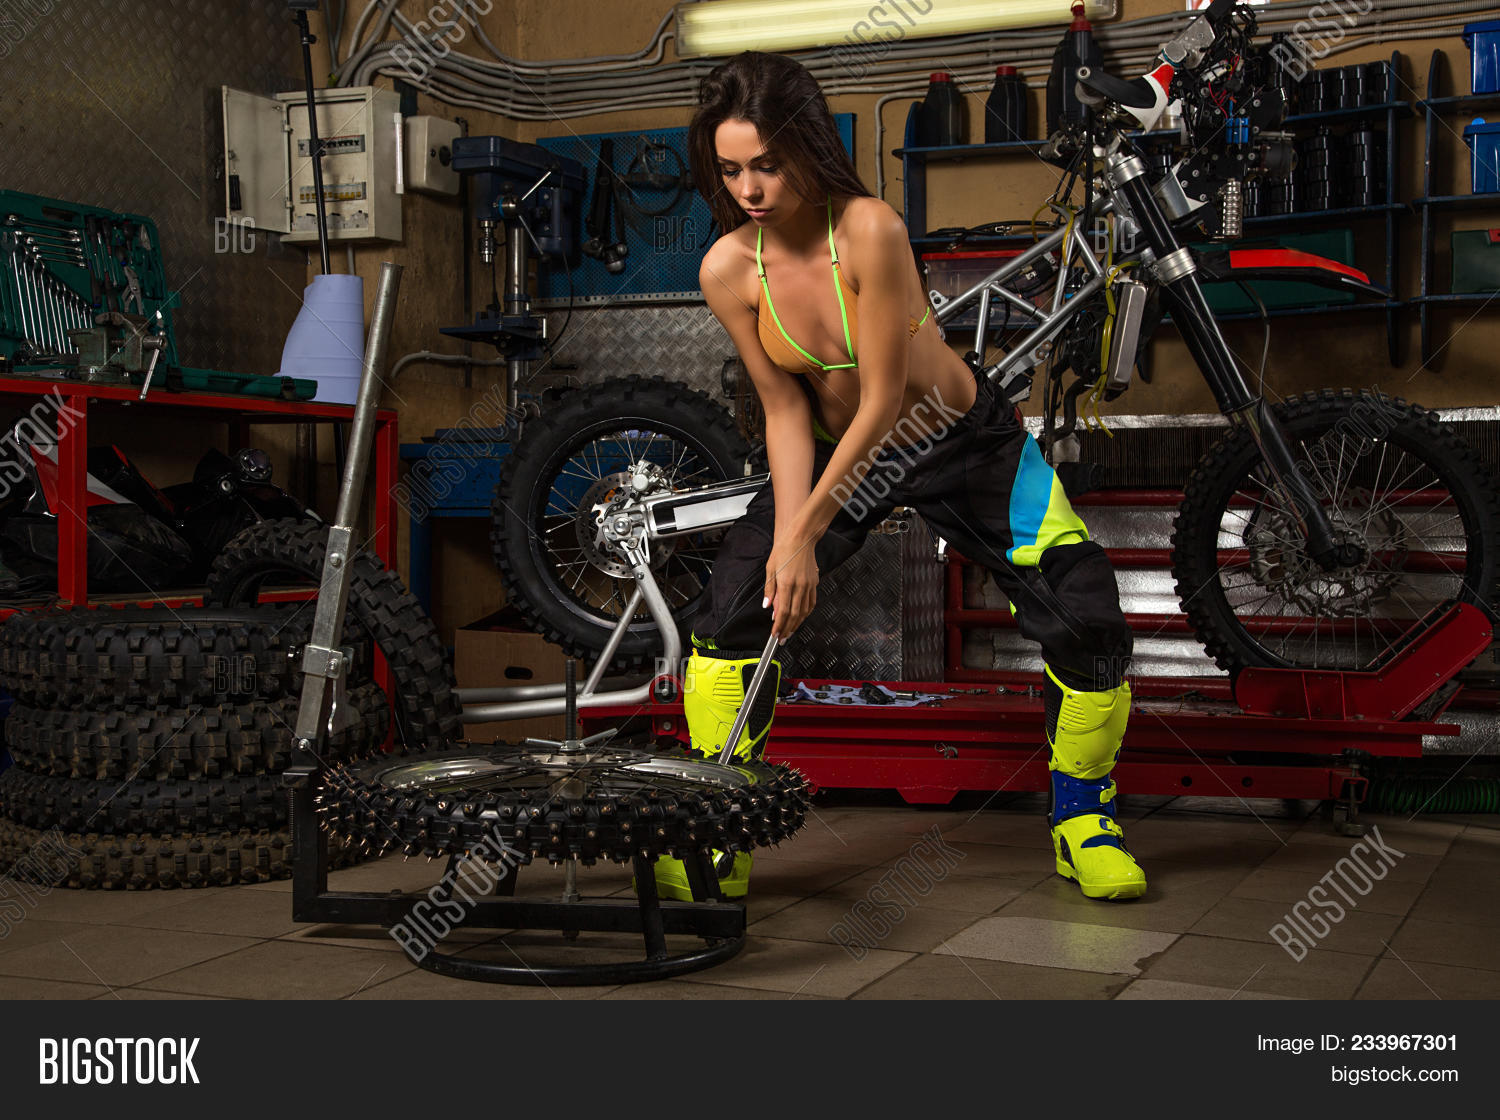 Sexy girl garage bike image & photo free trial bigstock